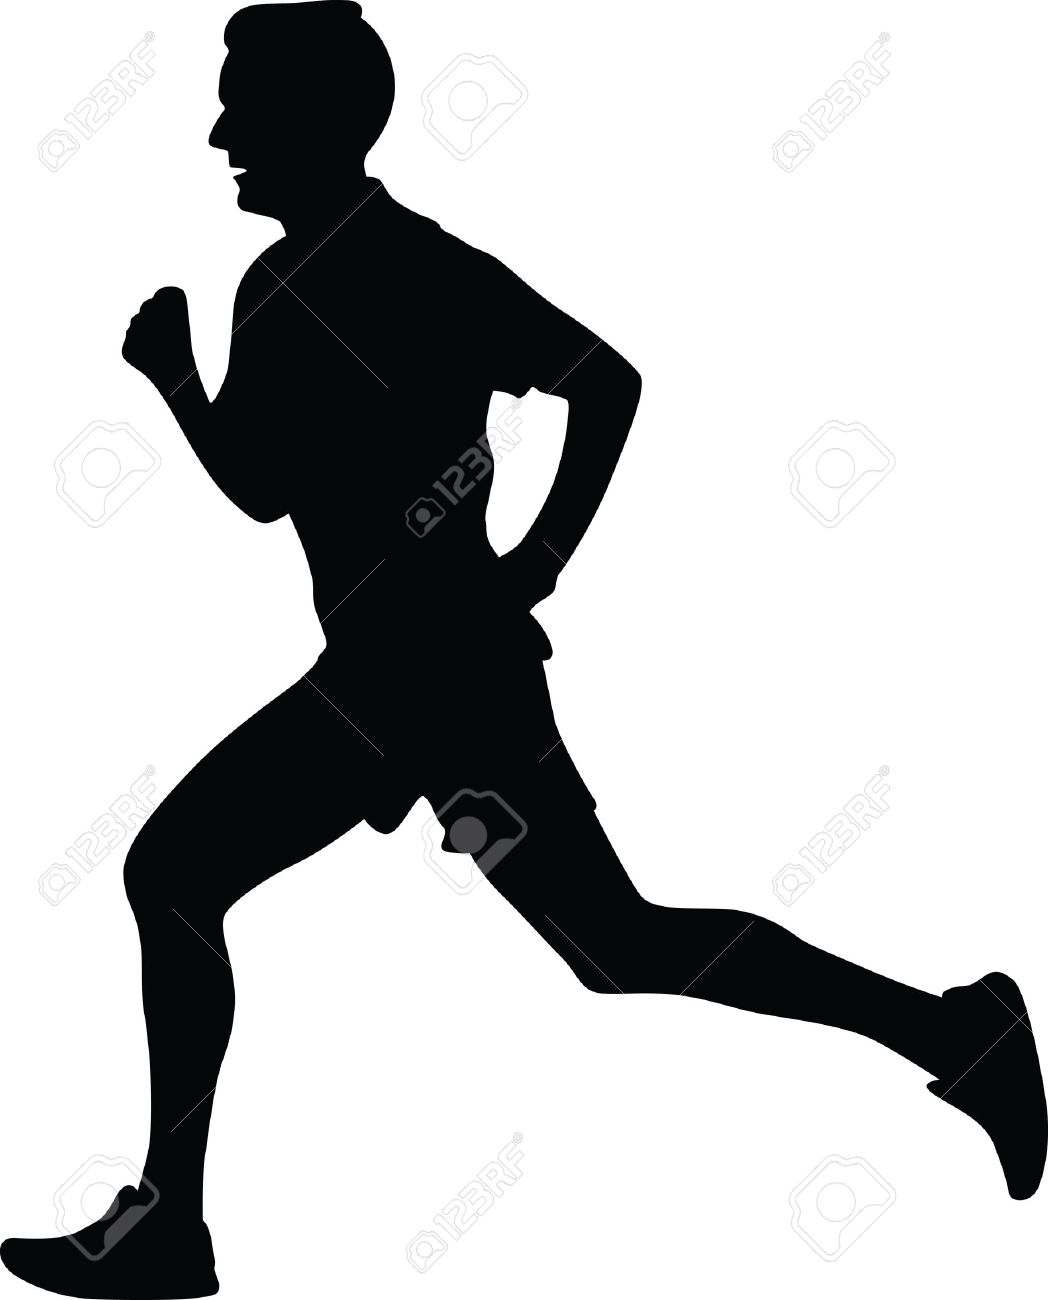 runner silhouette vector royalty free cliparts vectors and stock rh 123rf com runners silhouette vector free download road runner vector silhouette